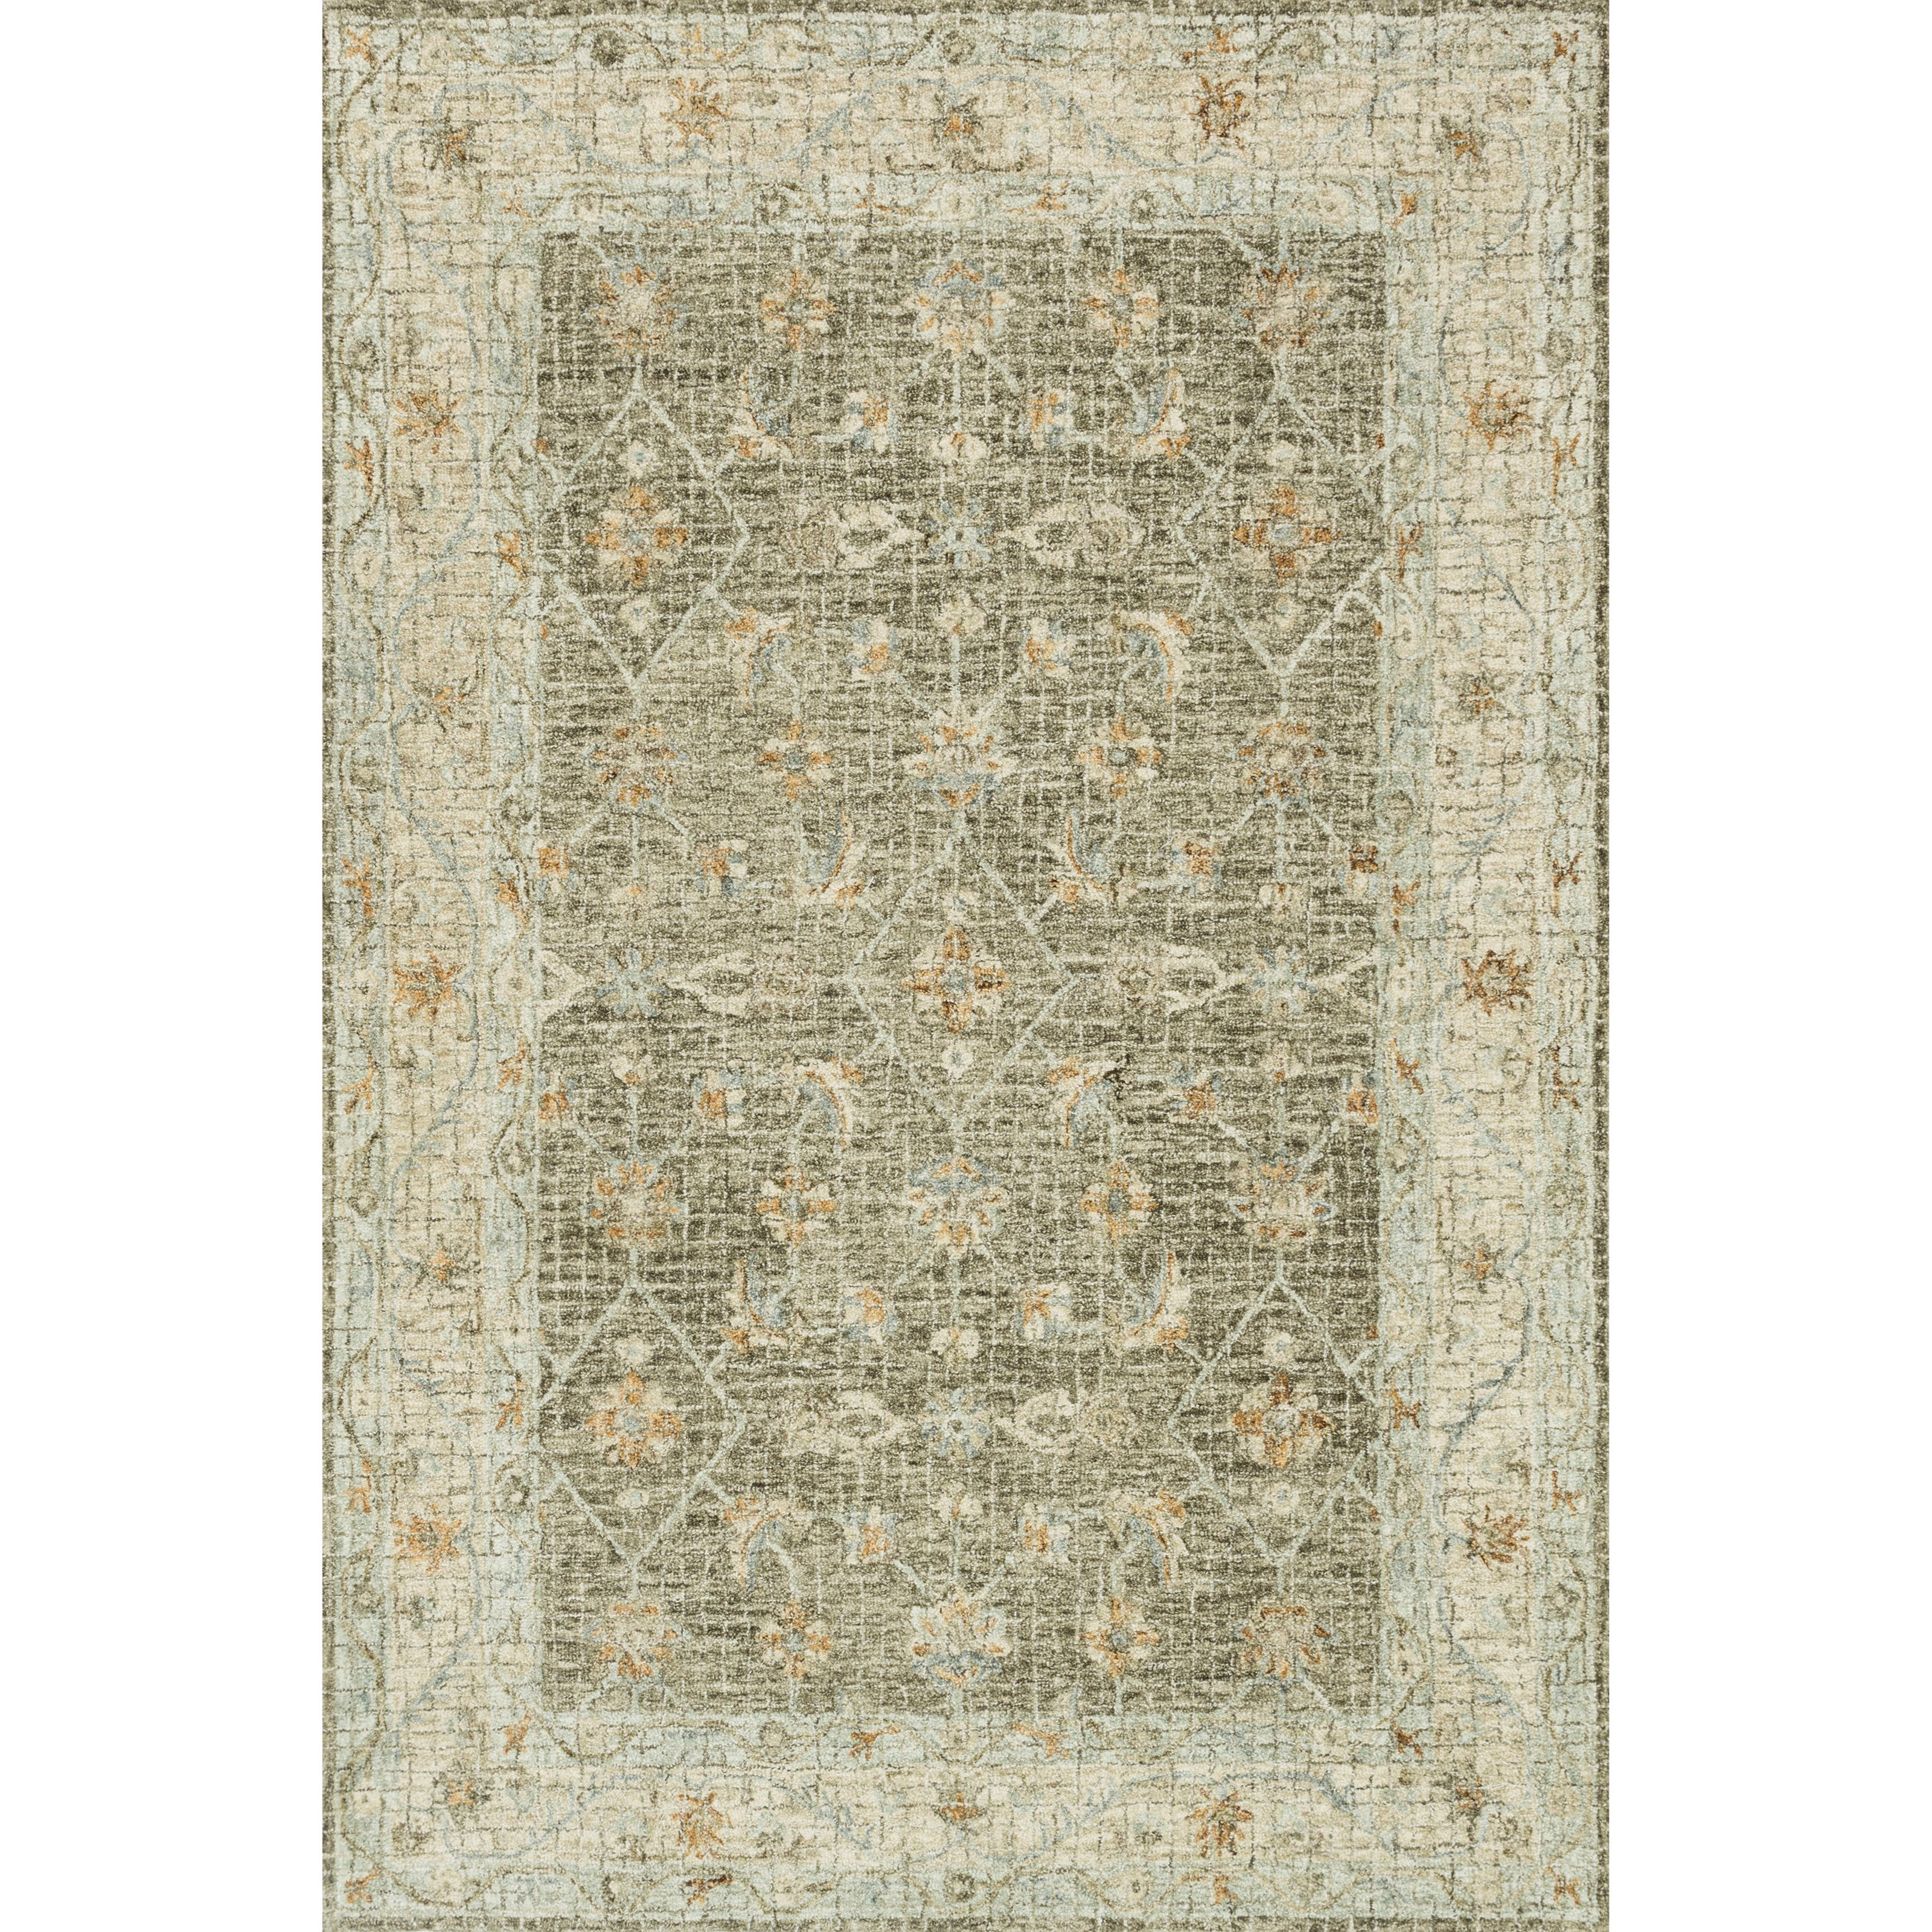 "Julian 5'0"" x 7'6"" Taupe / Sand Rug by Loloi Rugs at Sprintz Furniture"